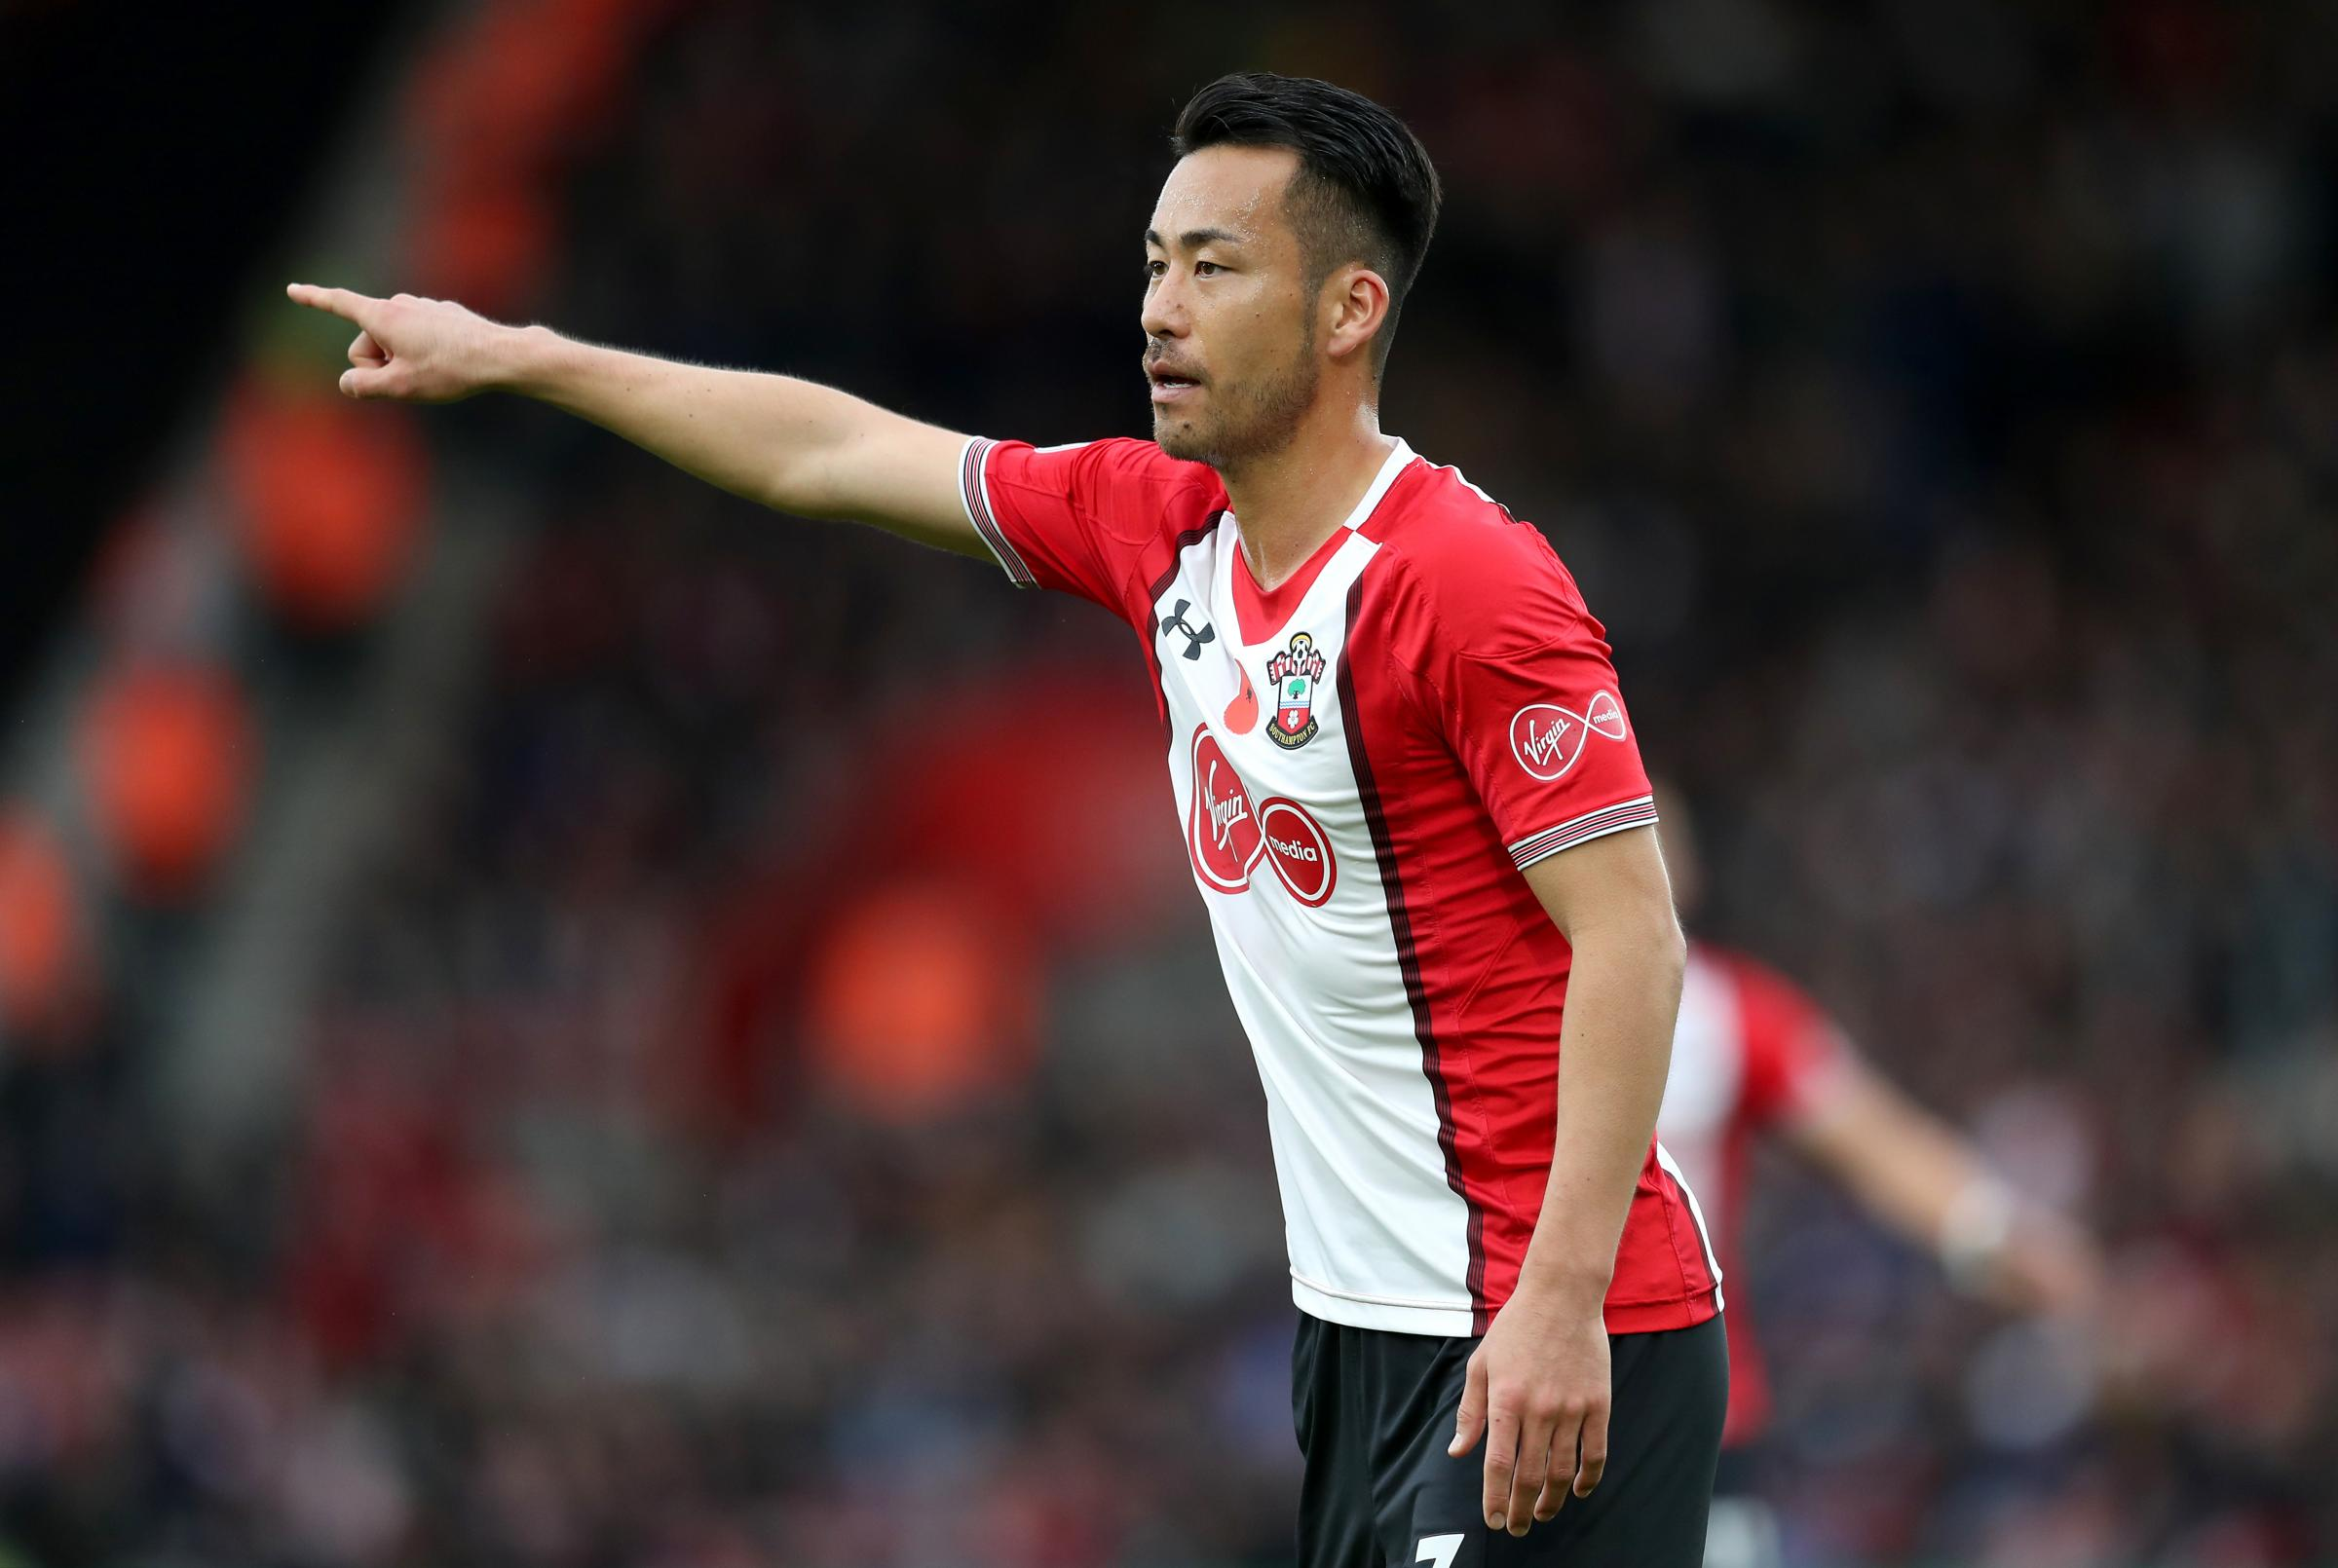 Yoshida has so many regrets ahead of World Cup